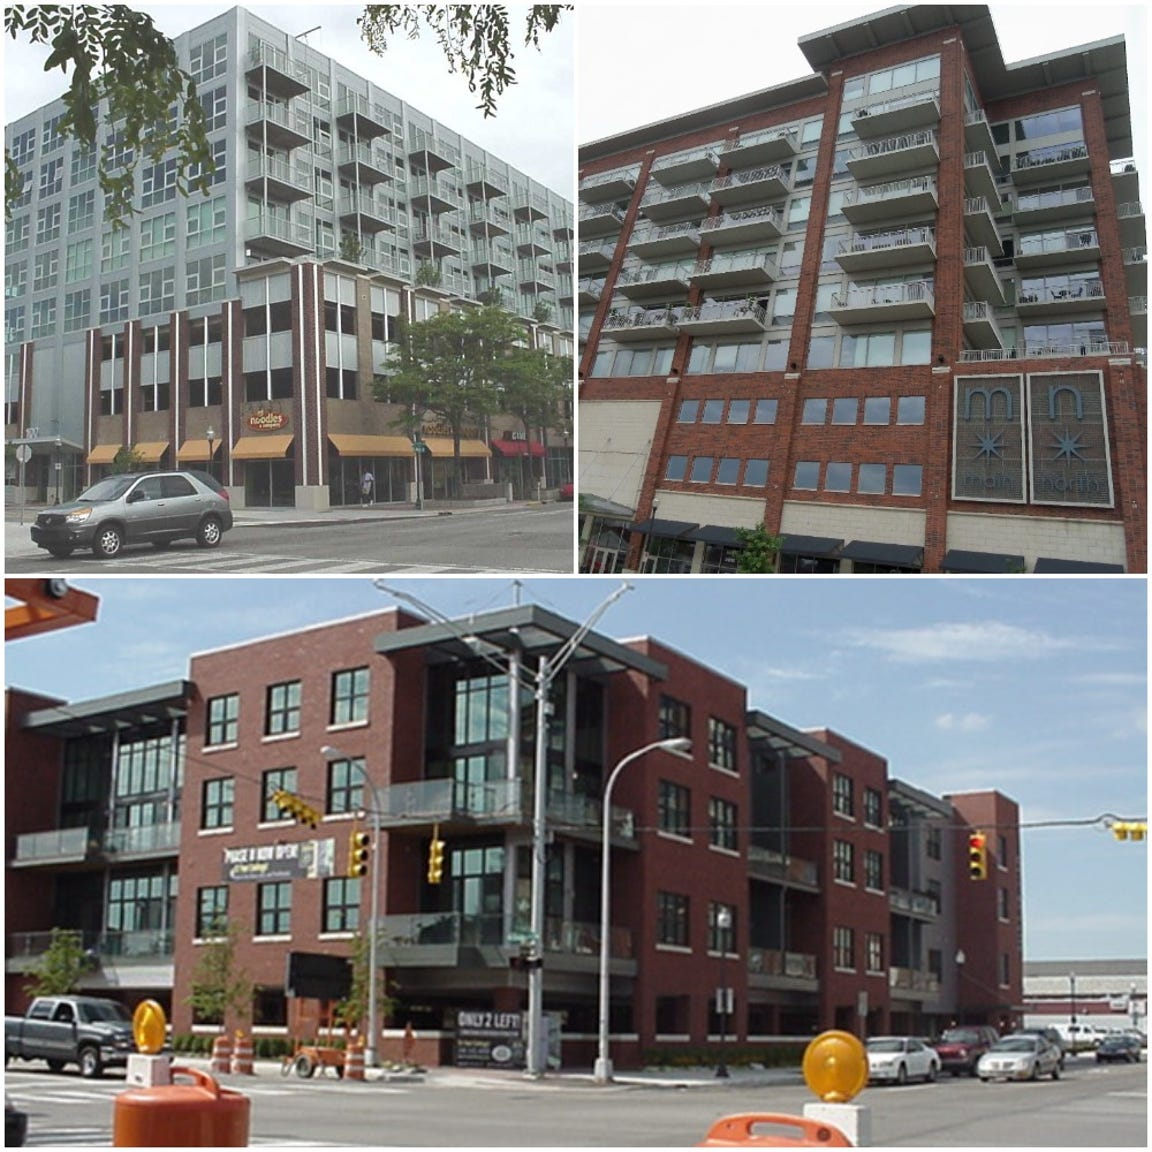 Rajendra Bothra's real-estate empire includes condominiums in downtown Royal Oak. Prosecutors have filed liens on several properties, including (from top left clockwise) units in the SkyLofts building, Main North and Center Street Lofts project.